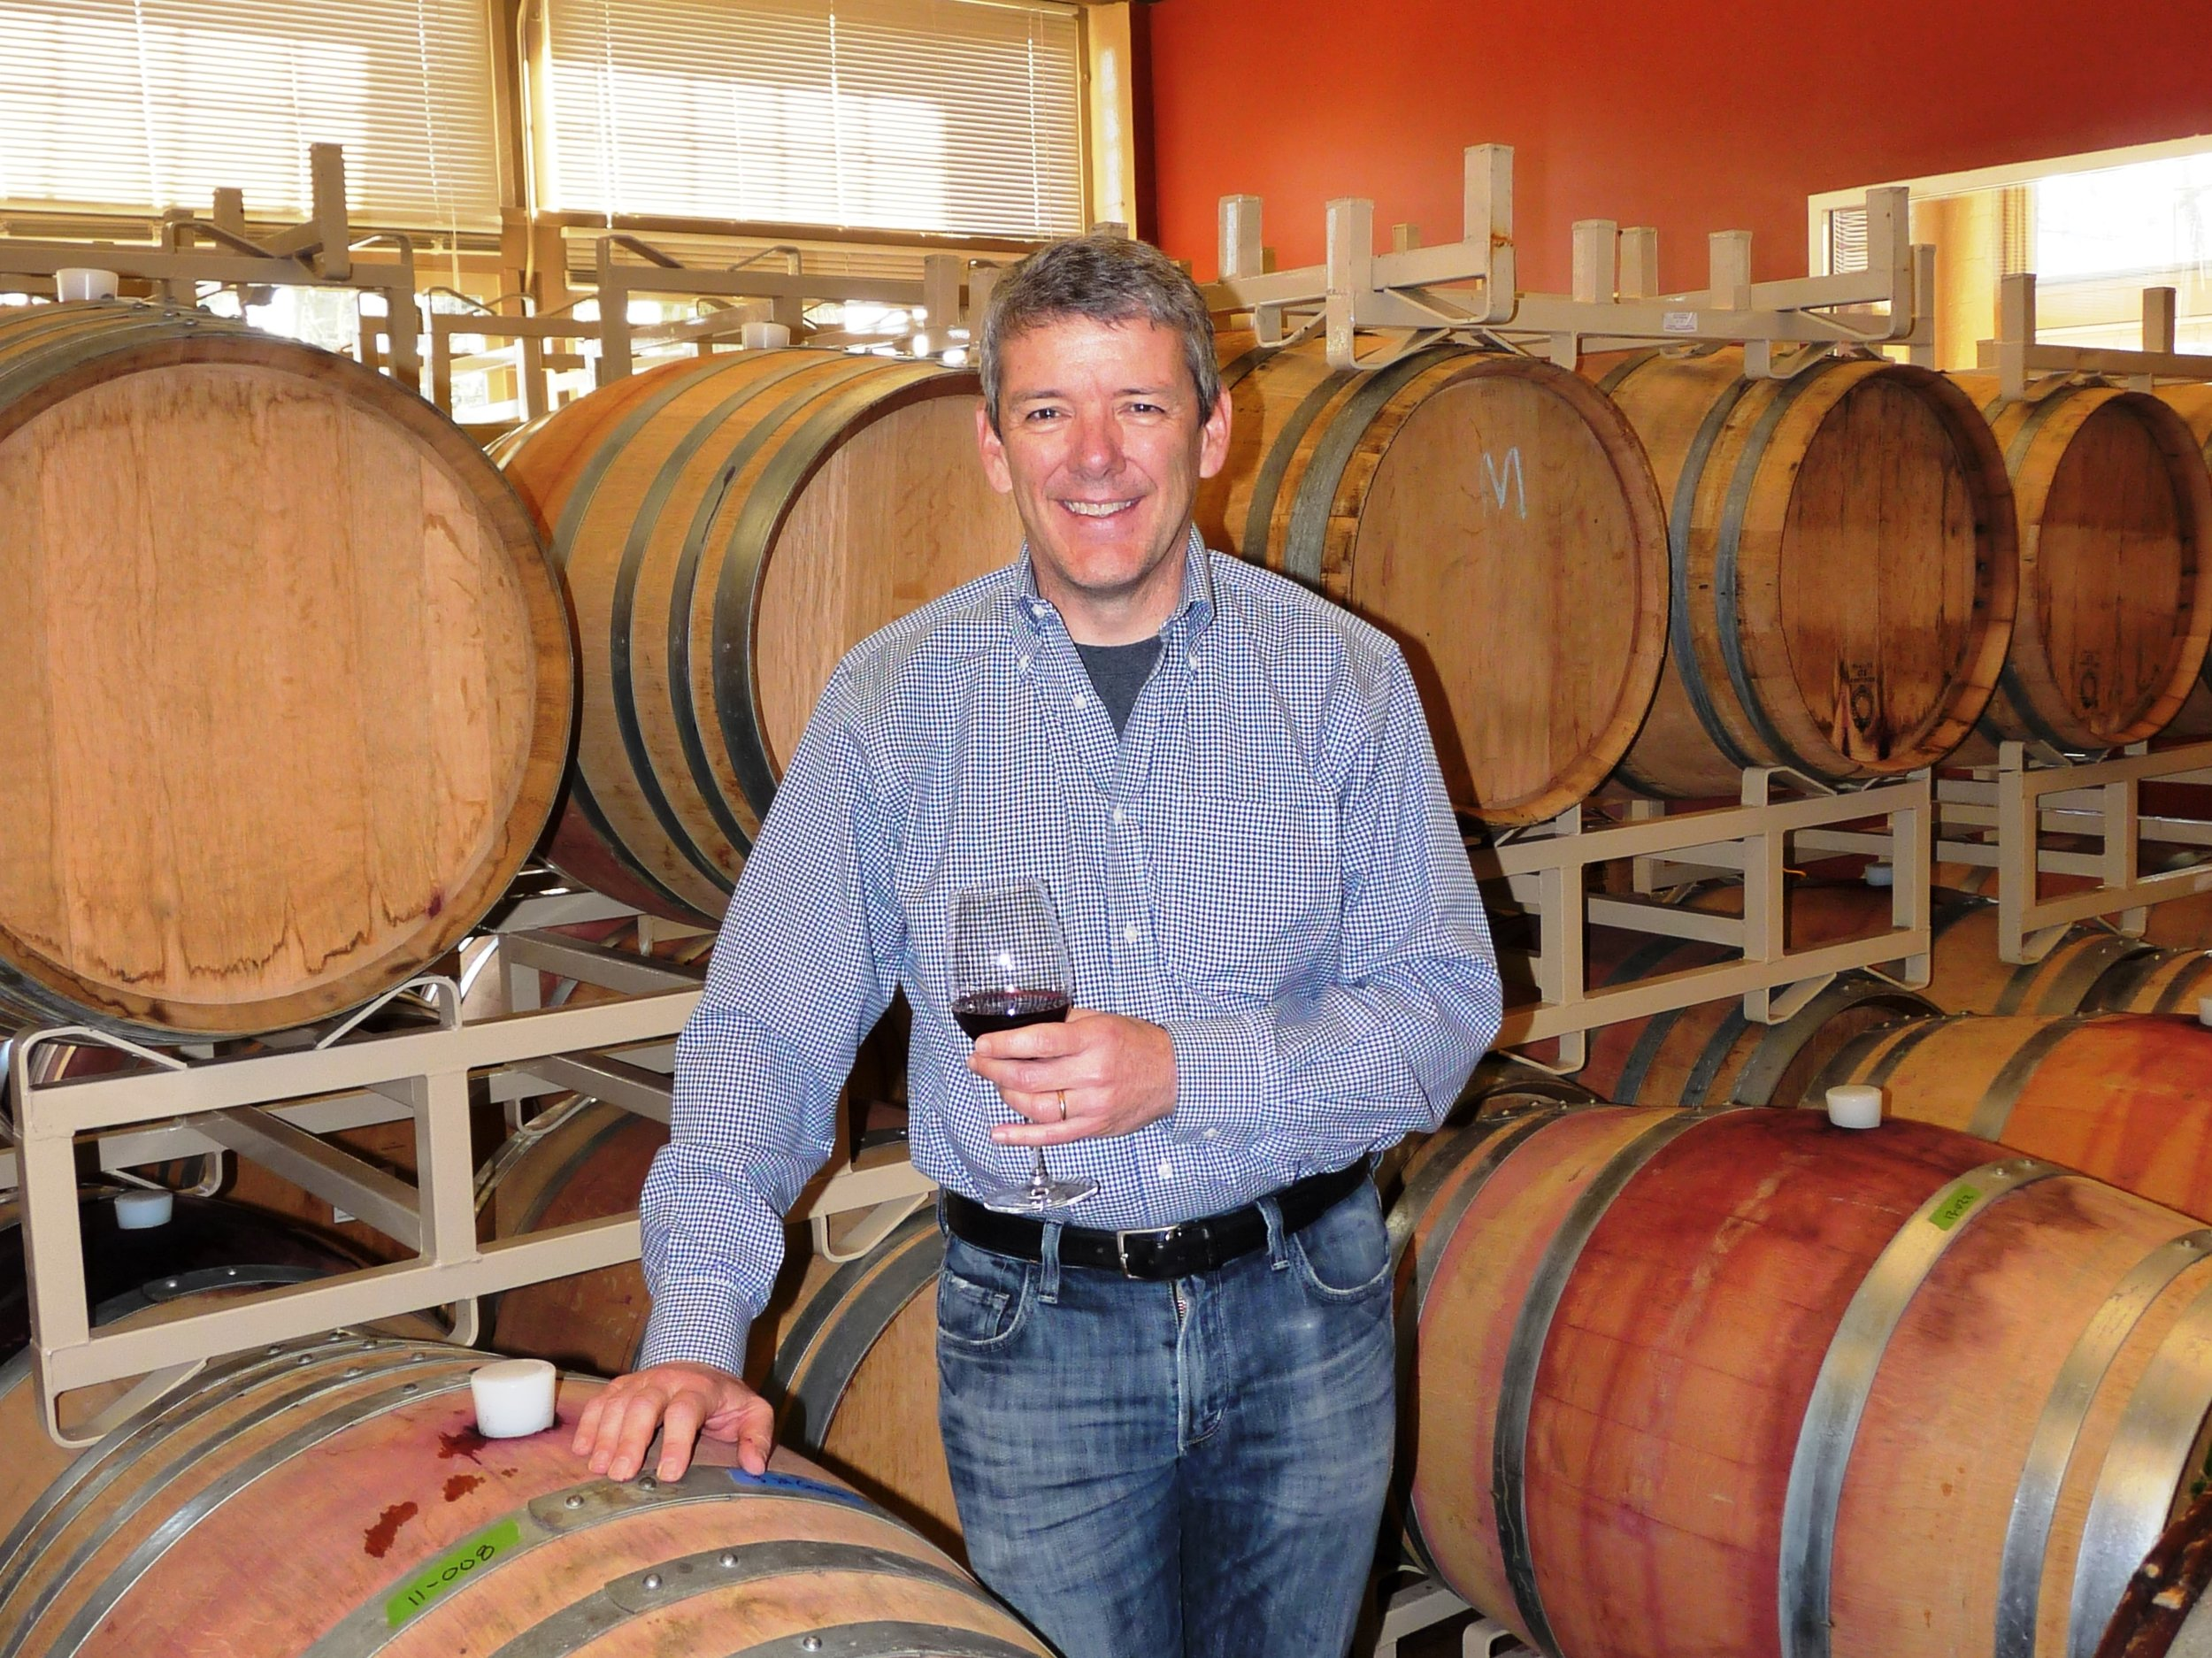 Winemaker, David Smith, blended his interest in chemistry, biology and wine to create a second career at Burnt Bridge Cellars in downtown Vancouver. Courtesy of Viki Eierdam.